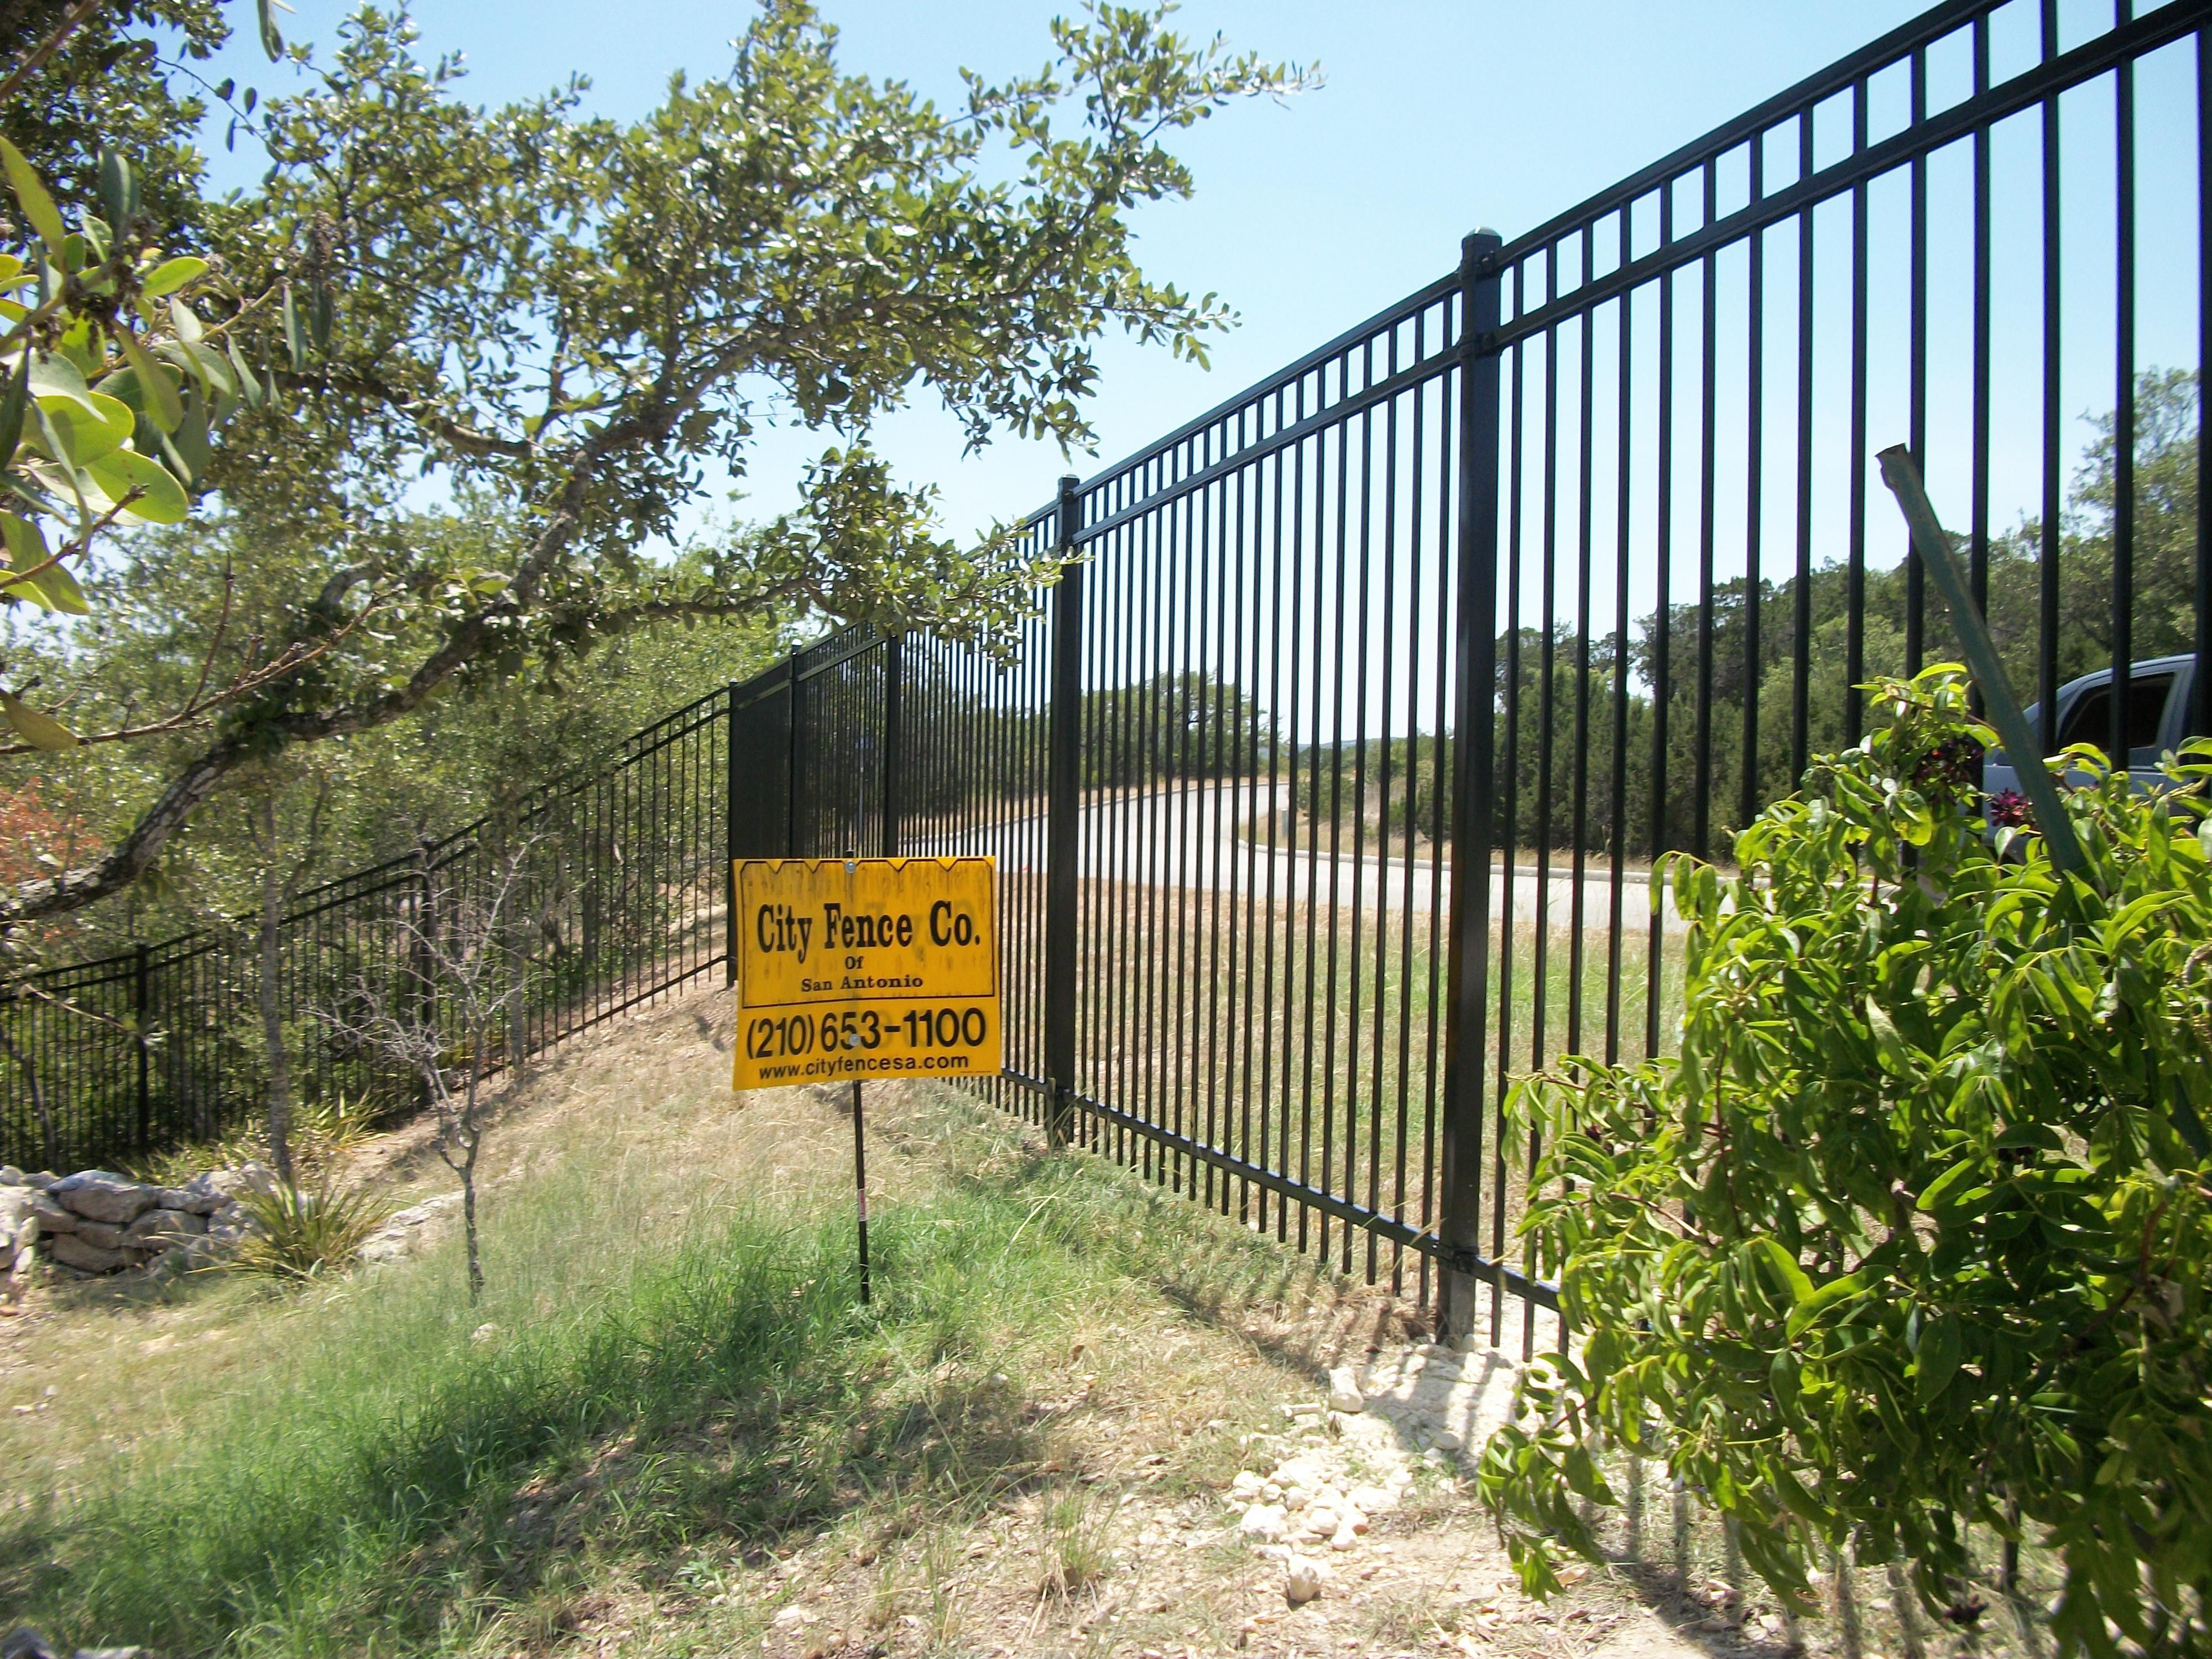 6 Tall Ornamental Iron City Fence Co Of San Antonio